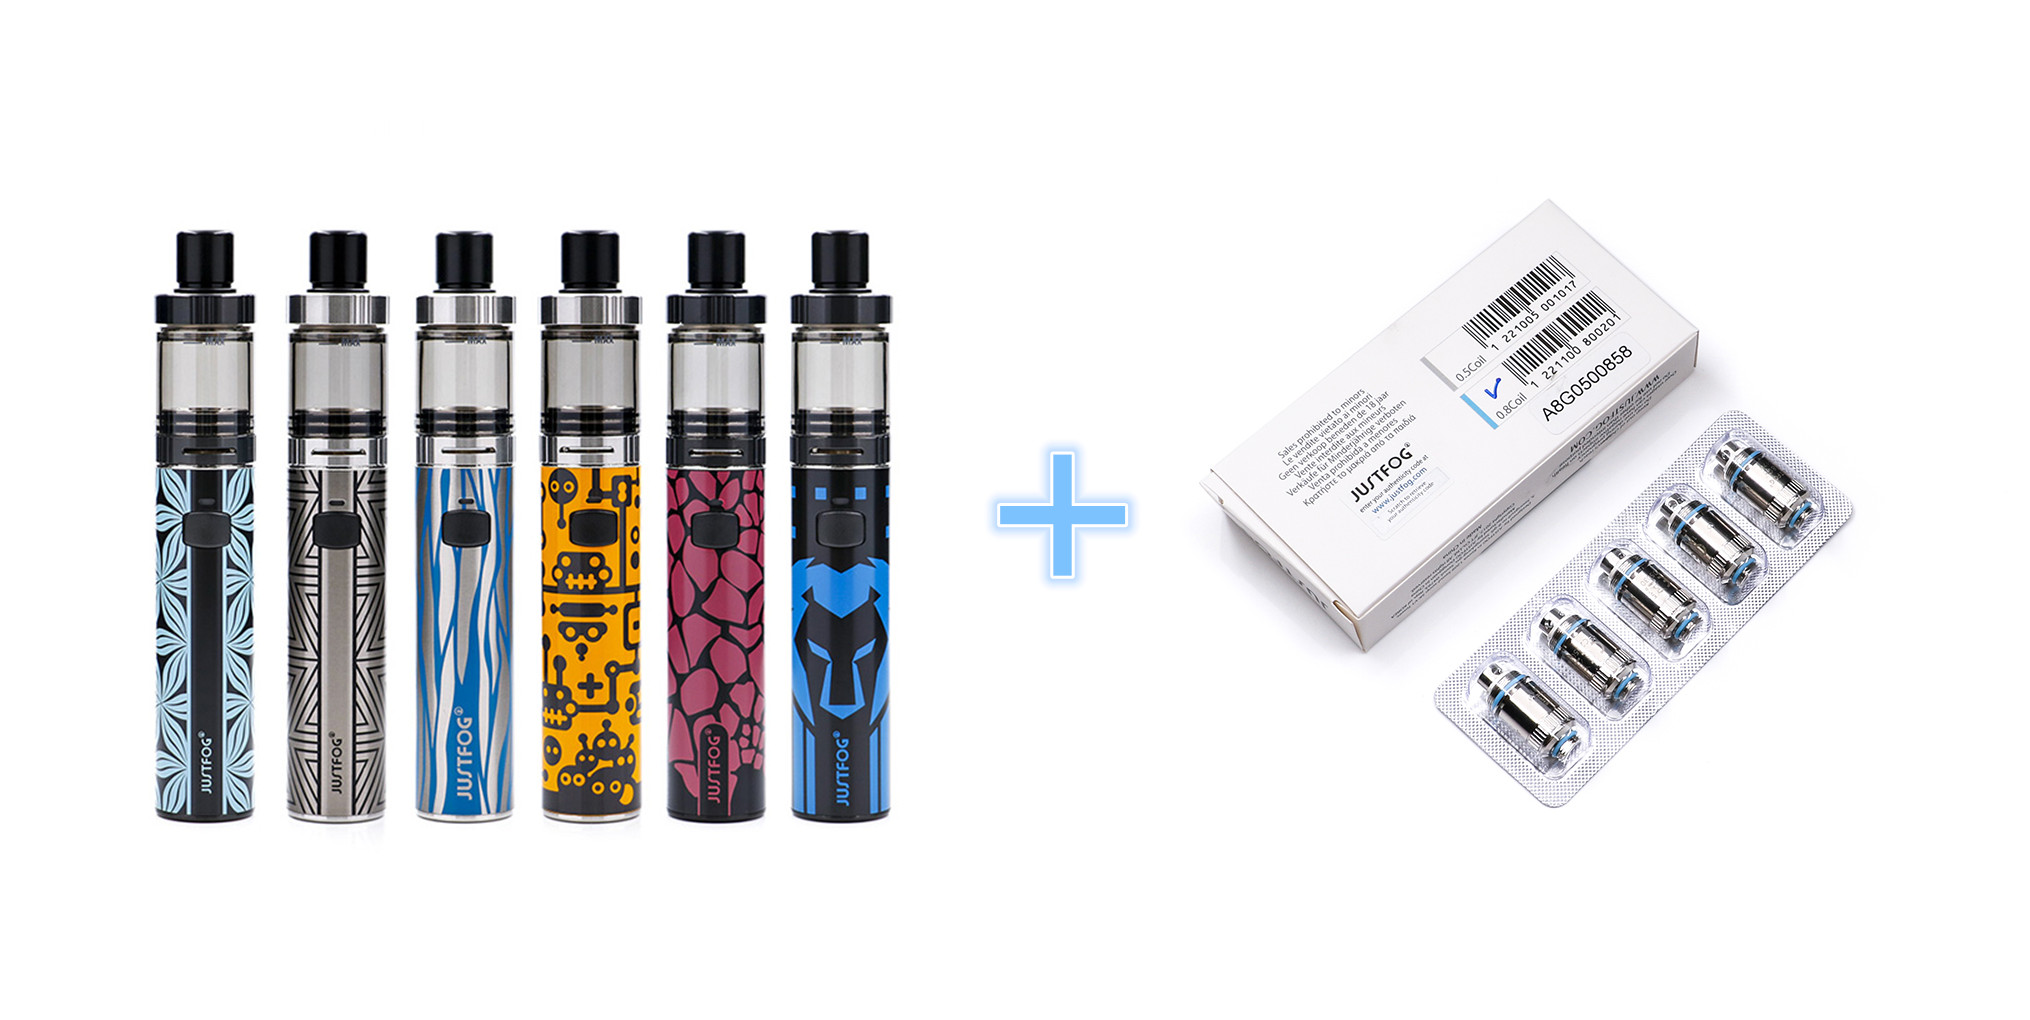 original JUSTFOG FOG1 Kit Limited edition 1500mAh and 5pcs justfog fog1 coils battery all in one vape pen kit 2ML